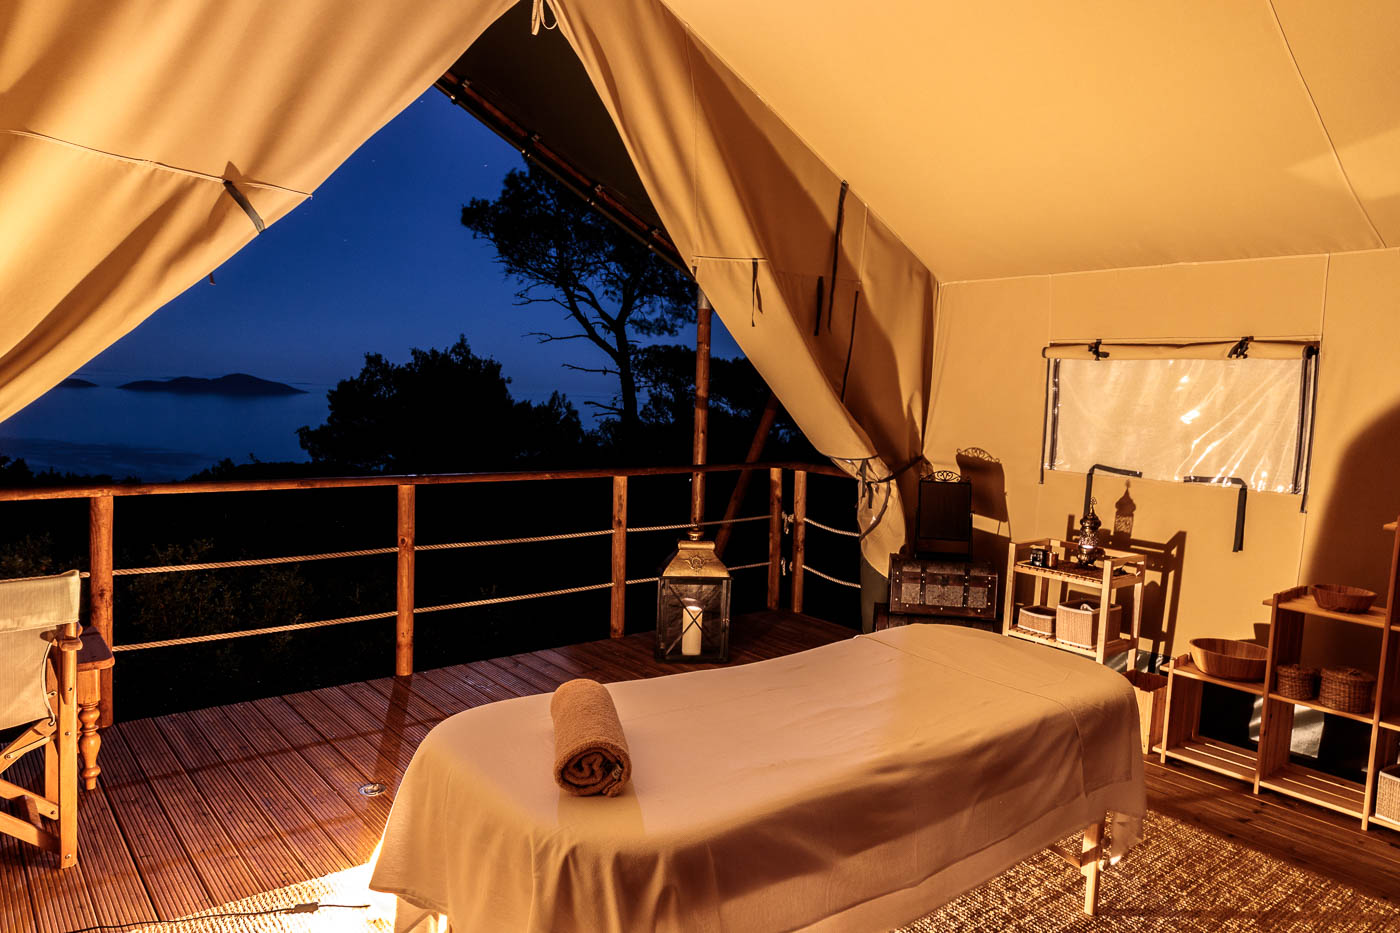 Evening massage at The Amani 180